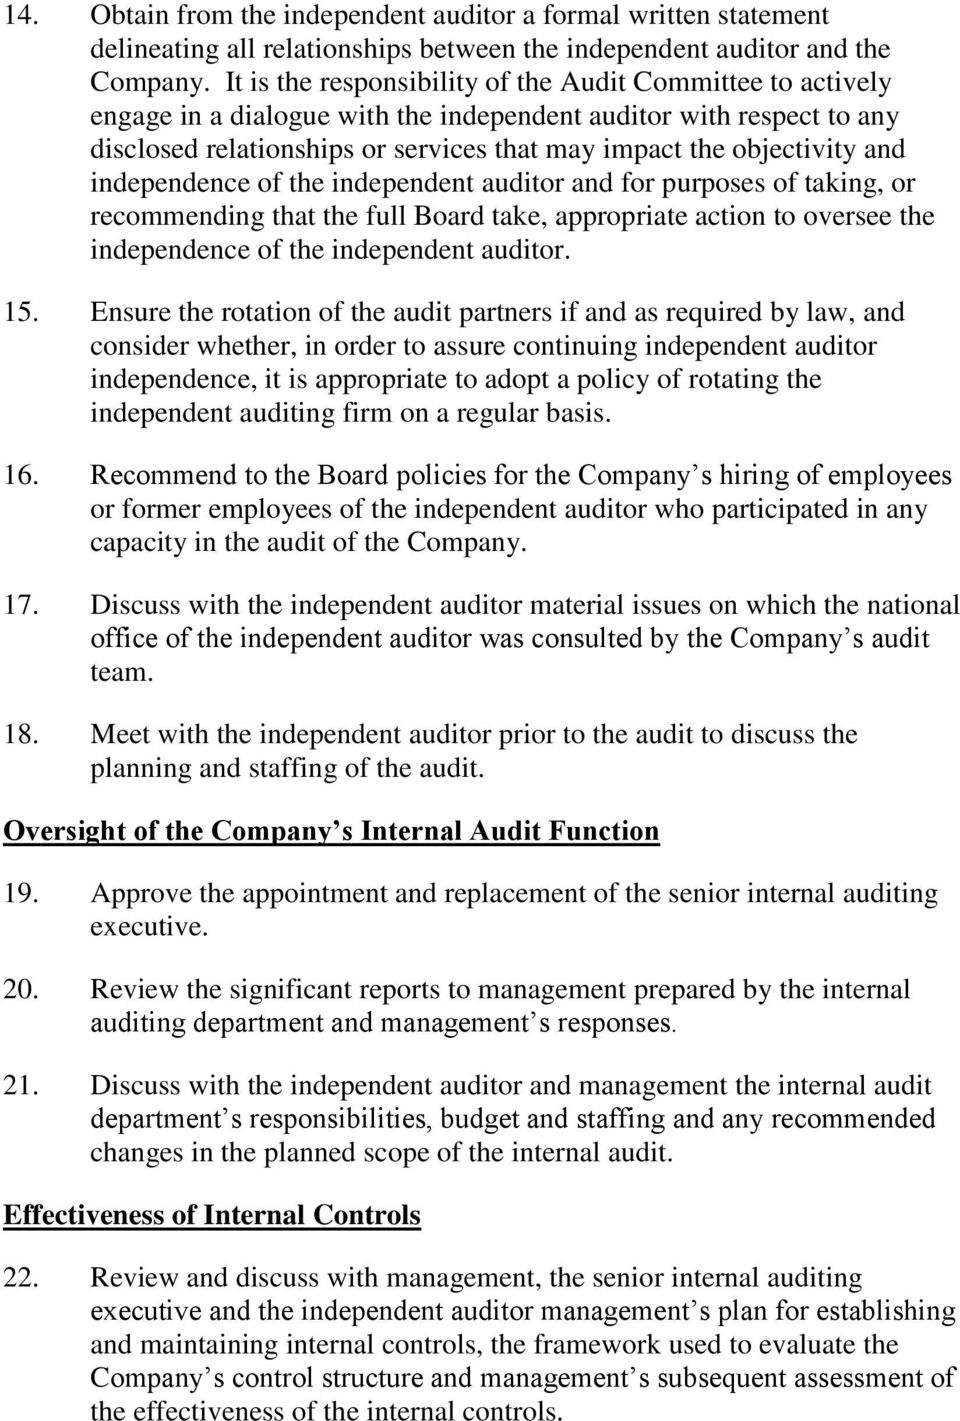 and independence of the independent auditor and for purposes of taking, or recommending that the full Board take, appropriate action to oversee the independence of the independent auditor. 15.